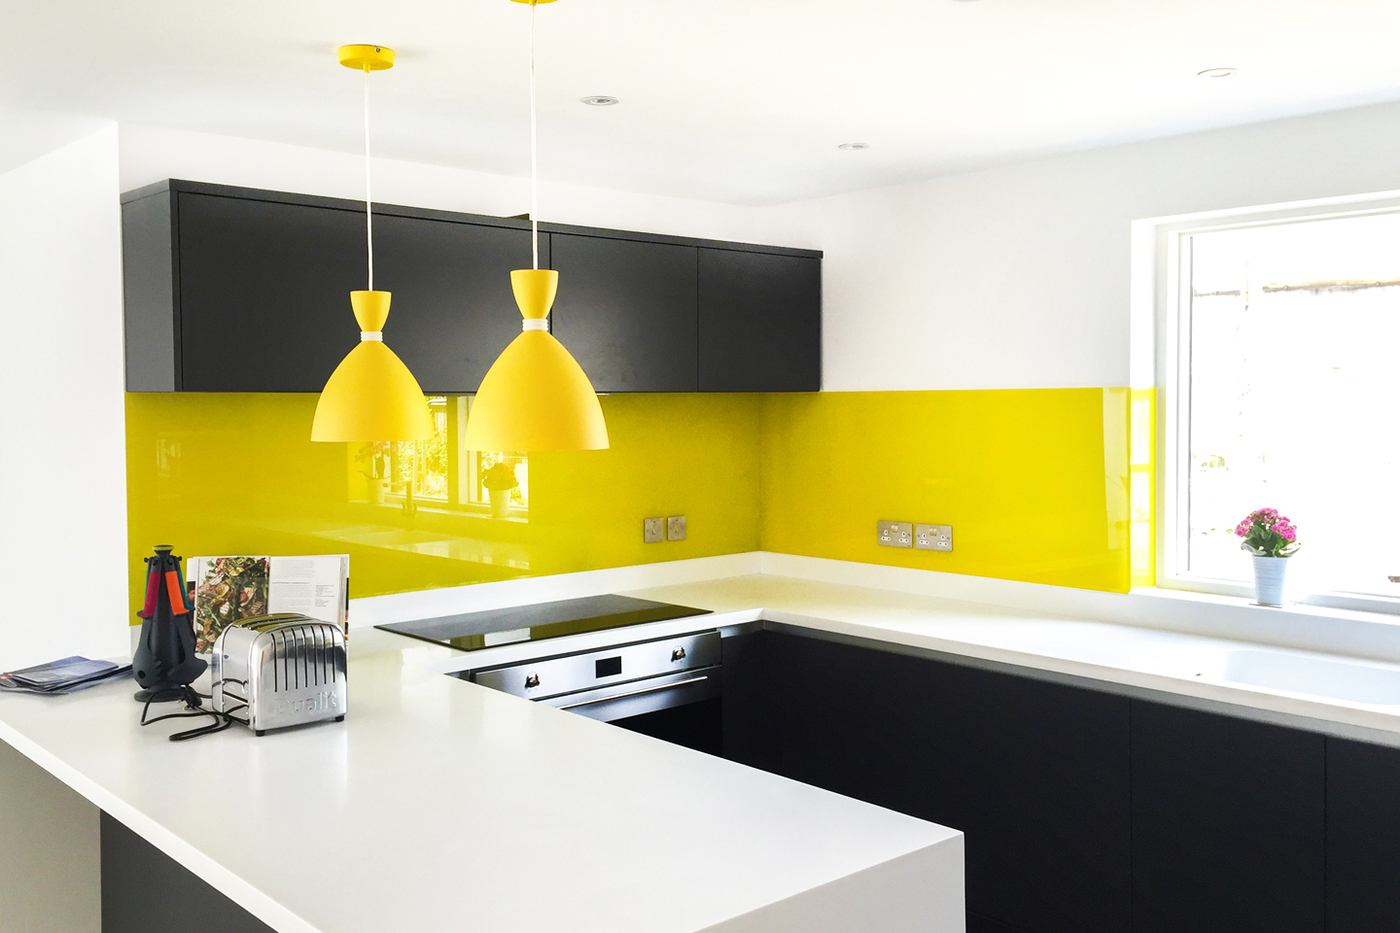 tile a splashback in kitchen- yellow painted